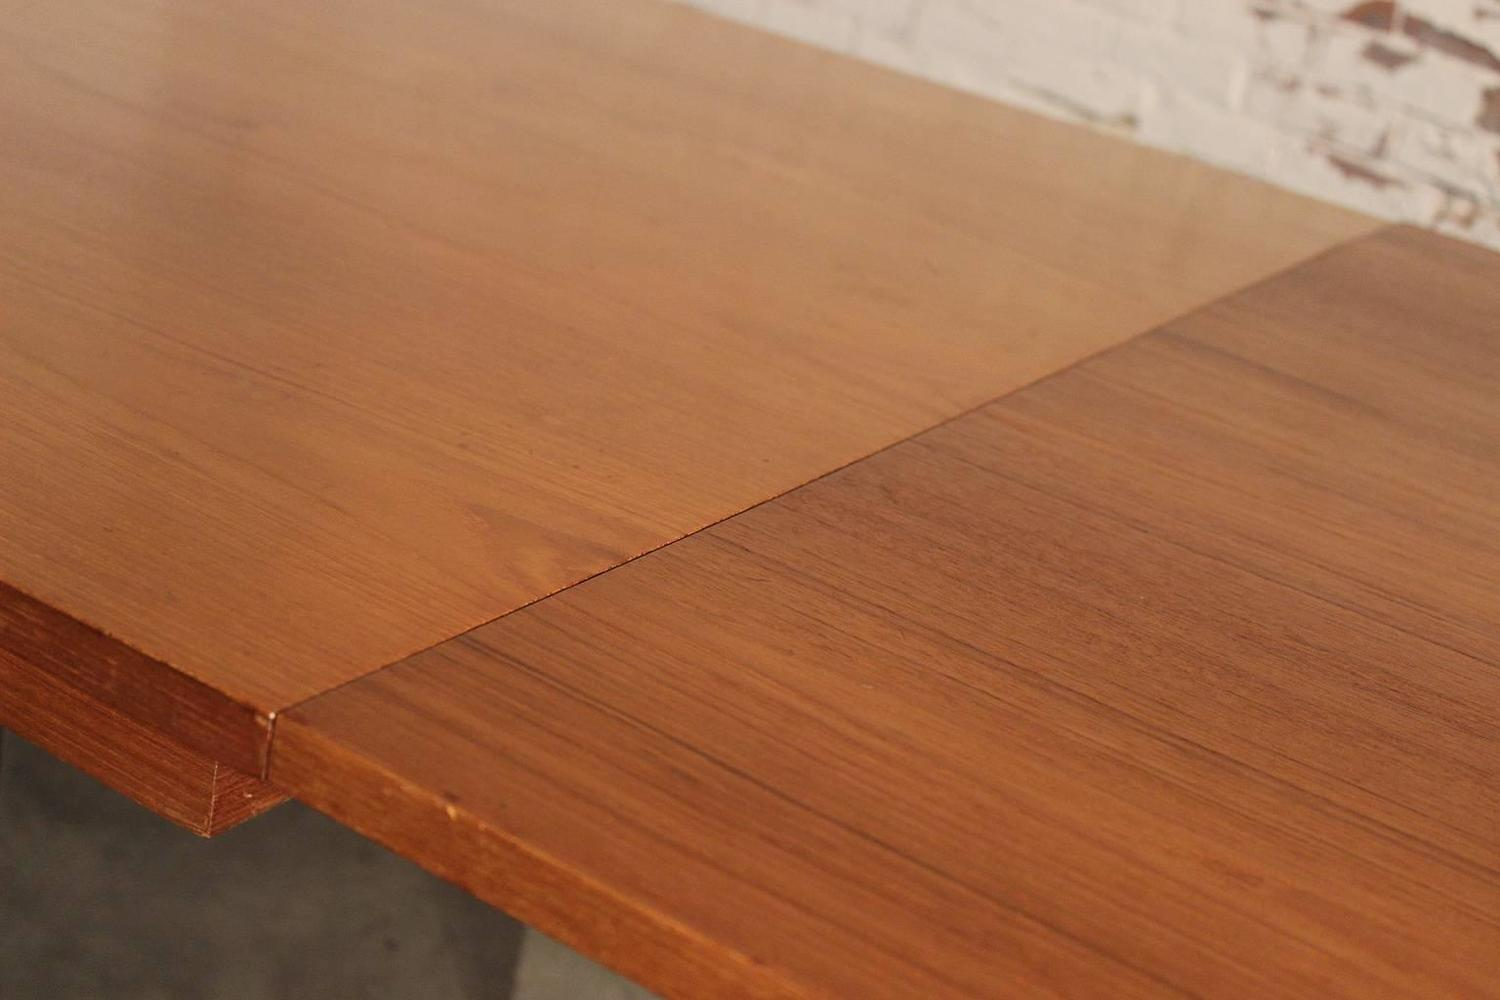 Mid century modern teak and stainless steel extending table for sale